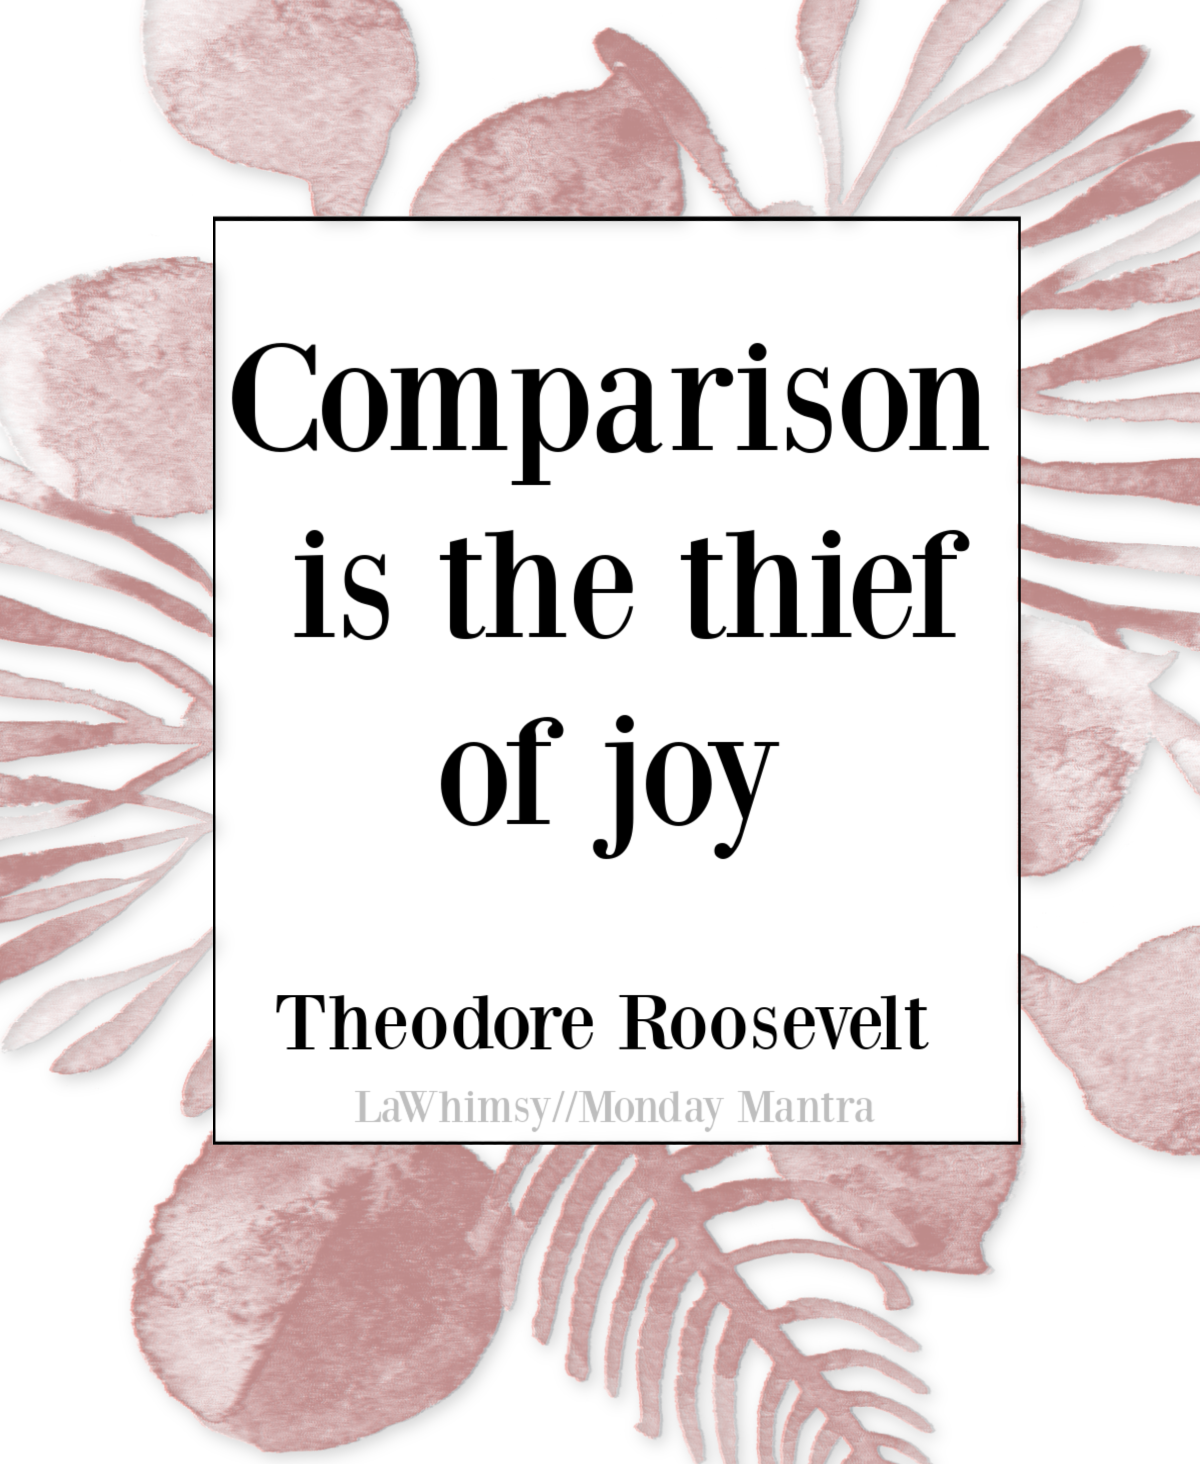 Comparison is the thief of joy Theodore Roosevelt quote Monday Mantra 286 via LaWhimsy